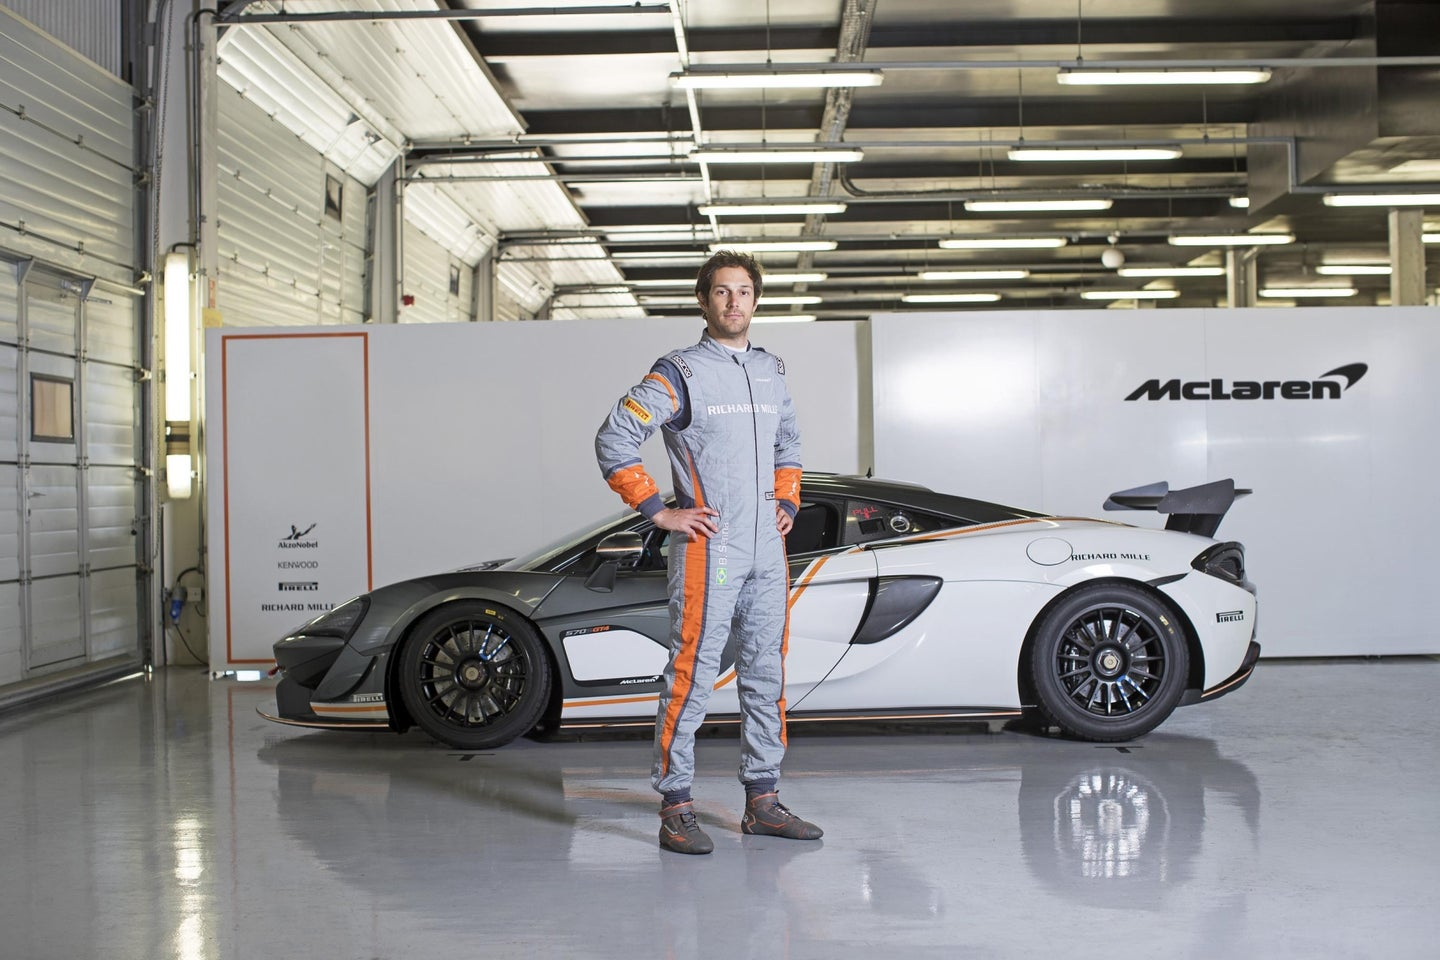 McLaren & Sparco Collaborate to Create World_s Lightest FIA-Certified Race Suit - Bruno Senna wears the SP16plus FIA race suit in front of the McLaren 570S GT4